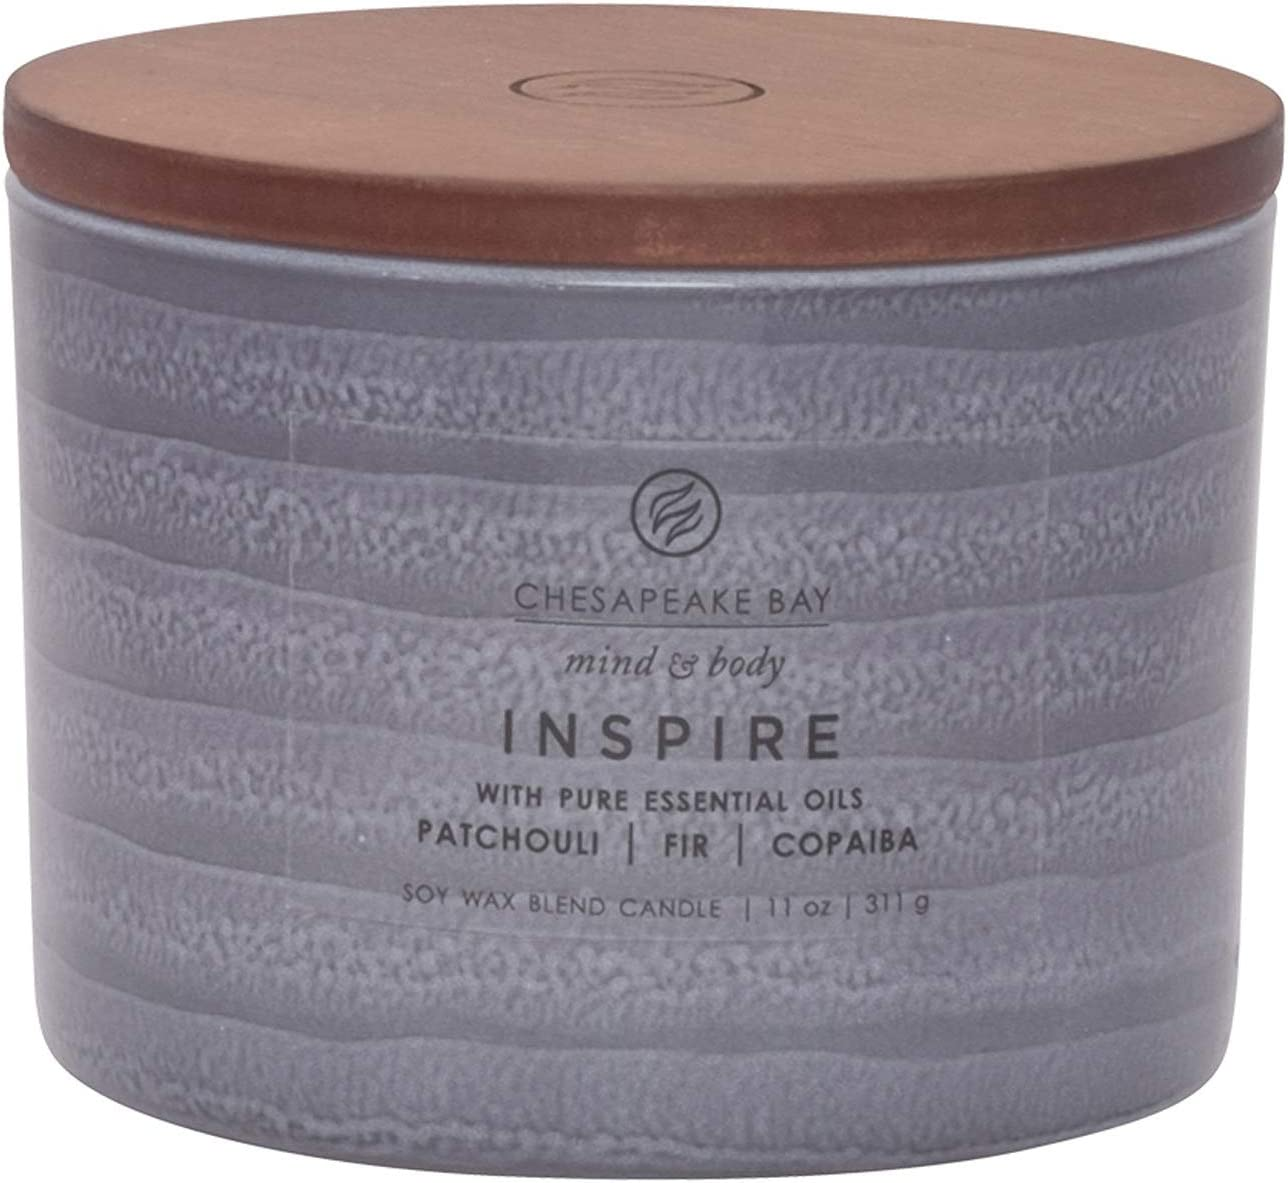 Chesapeake Bay Candle Mind & Body Serenity Scented Candle, Inspire with Pure Essential Oils (Patchouli, Fir and Copaiba), Coffee Table